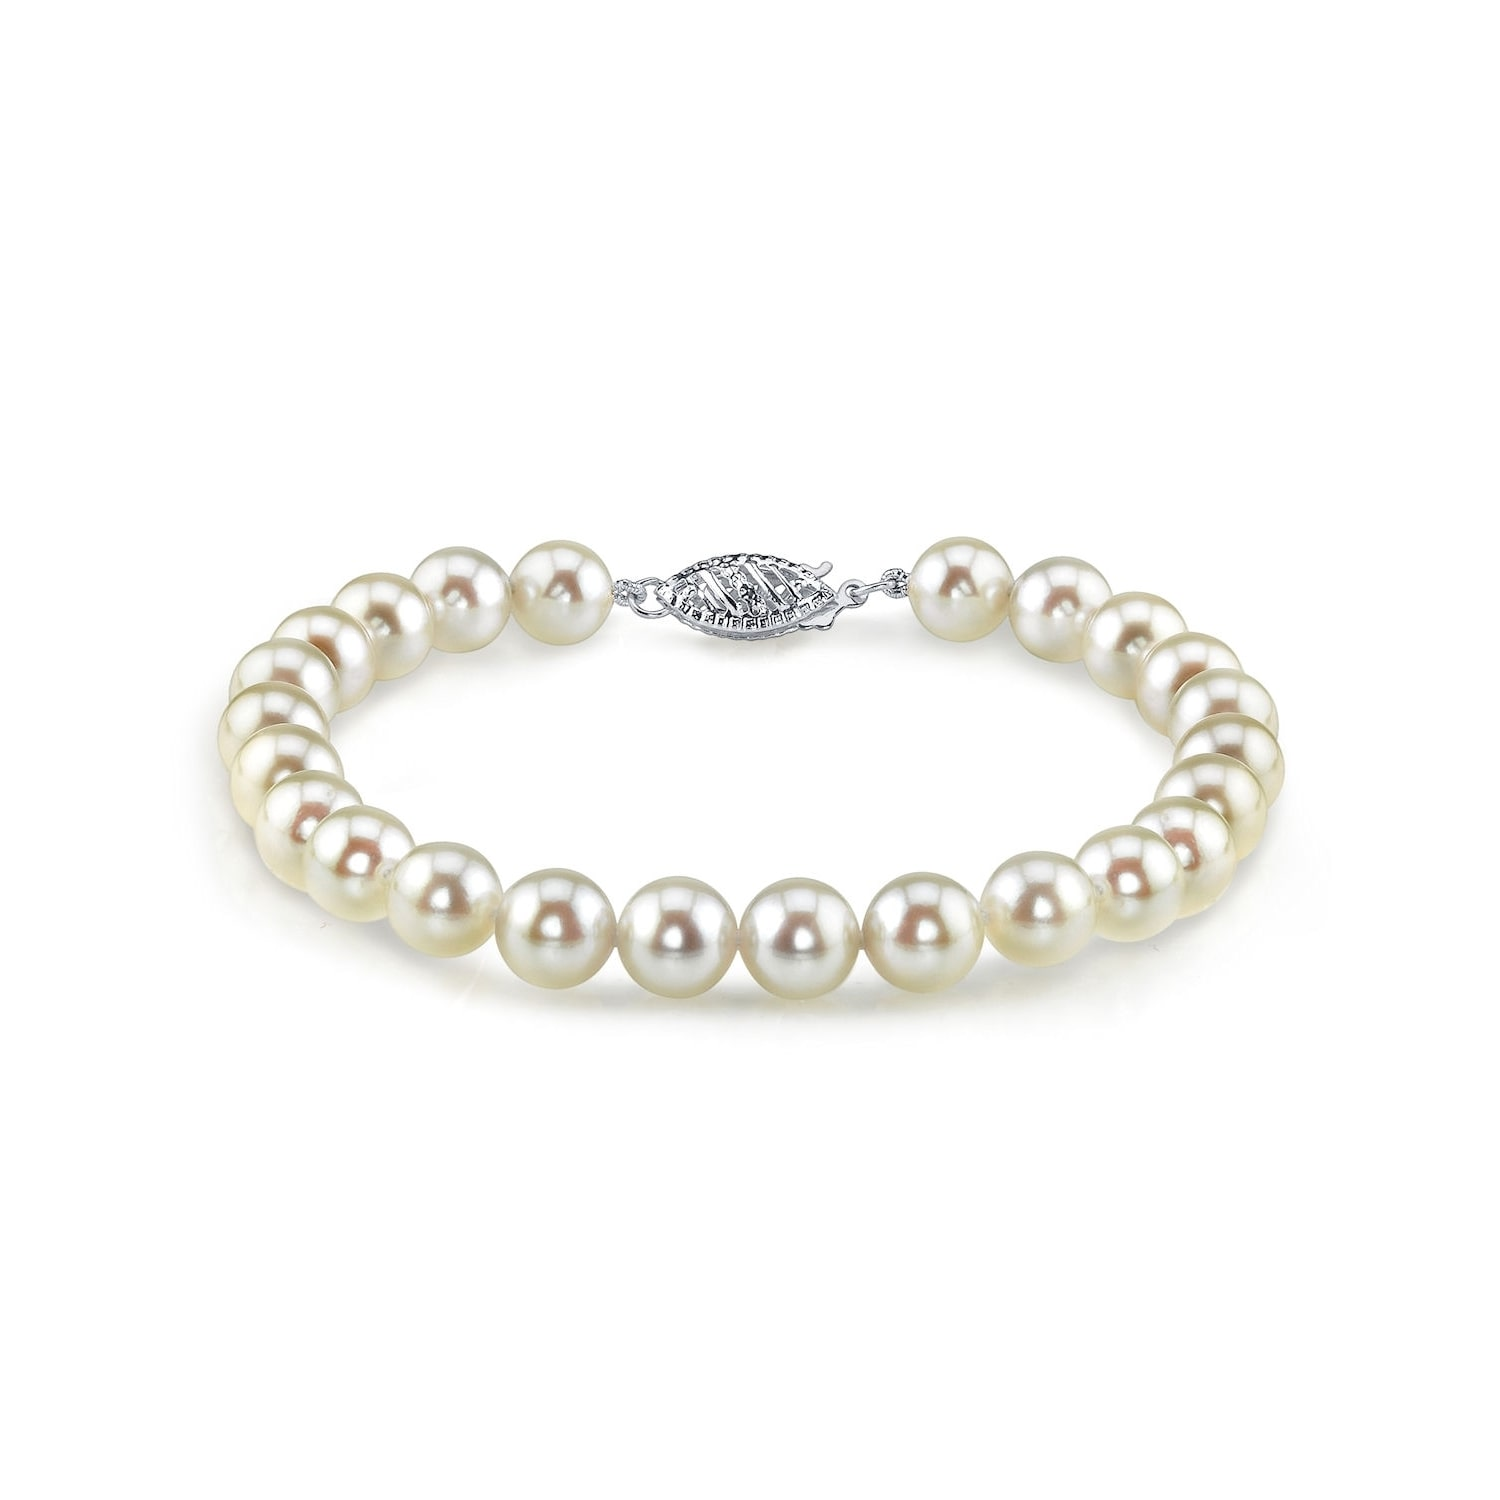 Radiance Pearl 14k Gold AAA-quality White Akoya Pearl Bracelet (7.5-8mm) by Overstock